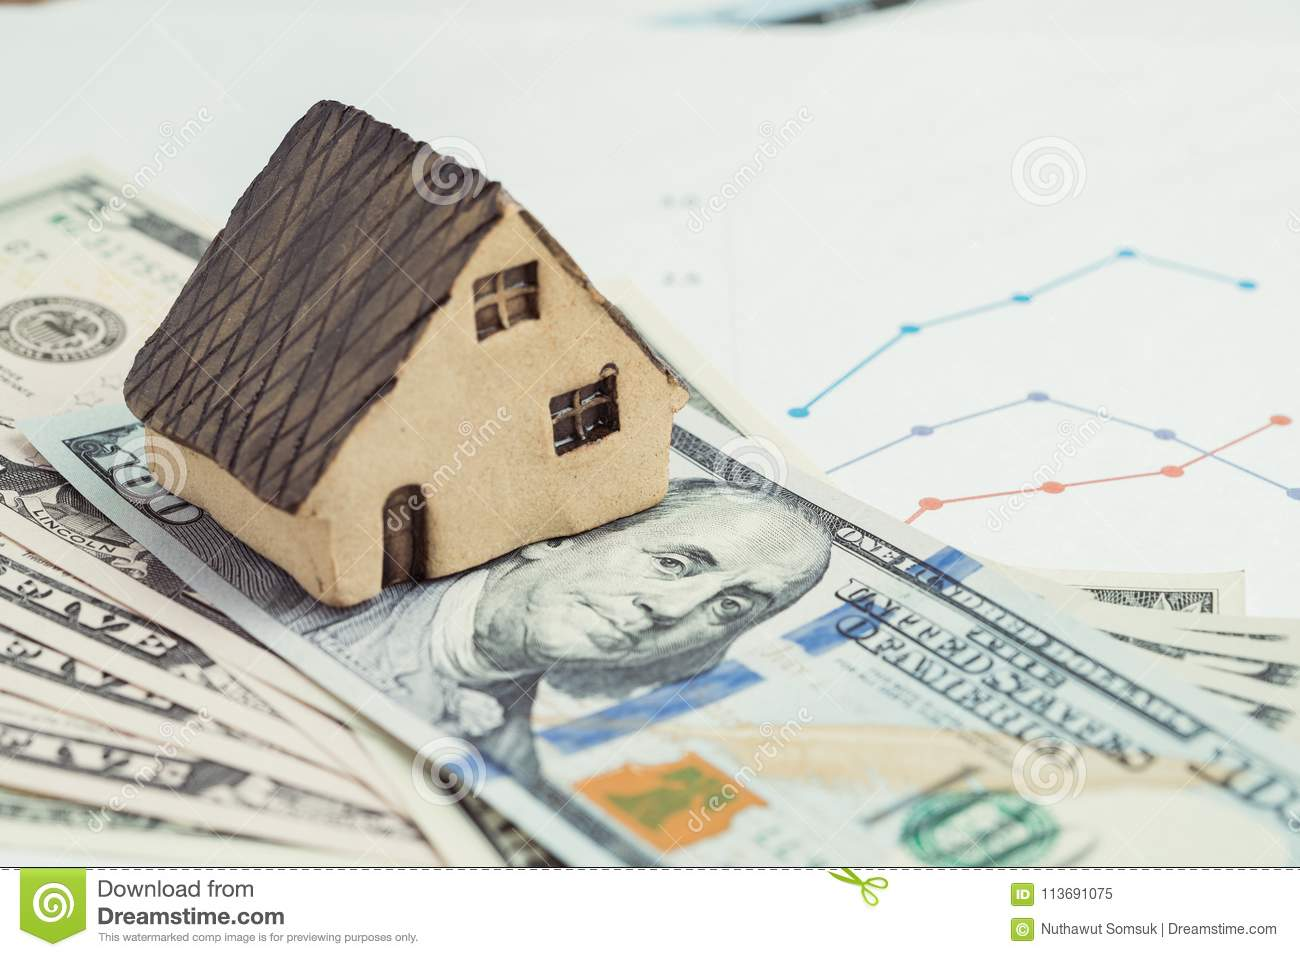 Buy and sell house or real estate, home loan, mortgage and property investment concept, miniature house on pile of US dollar bank